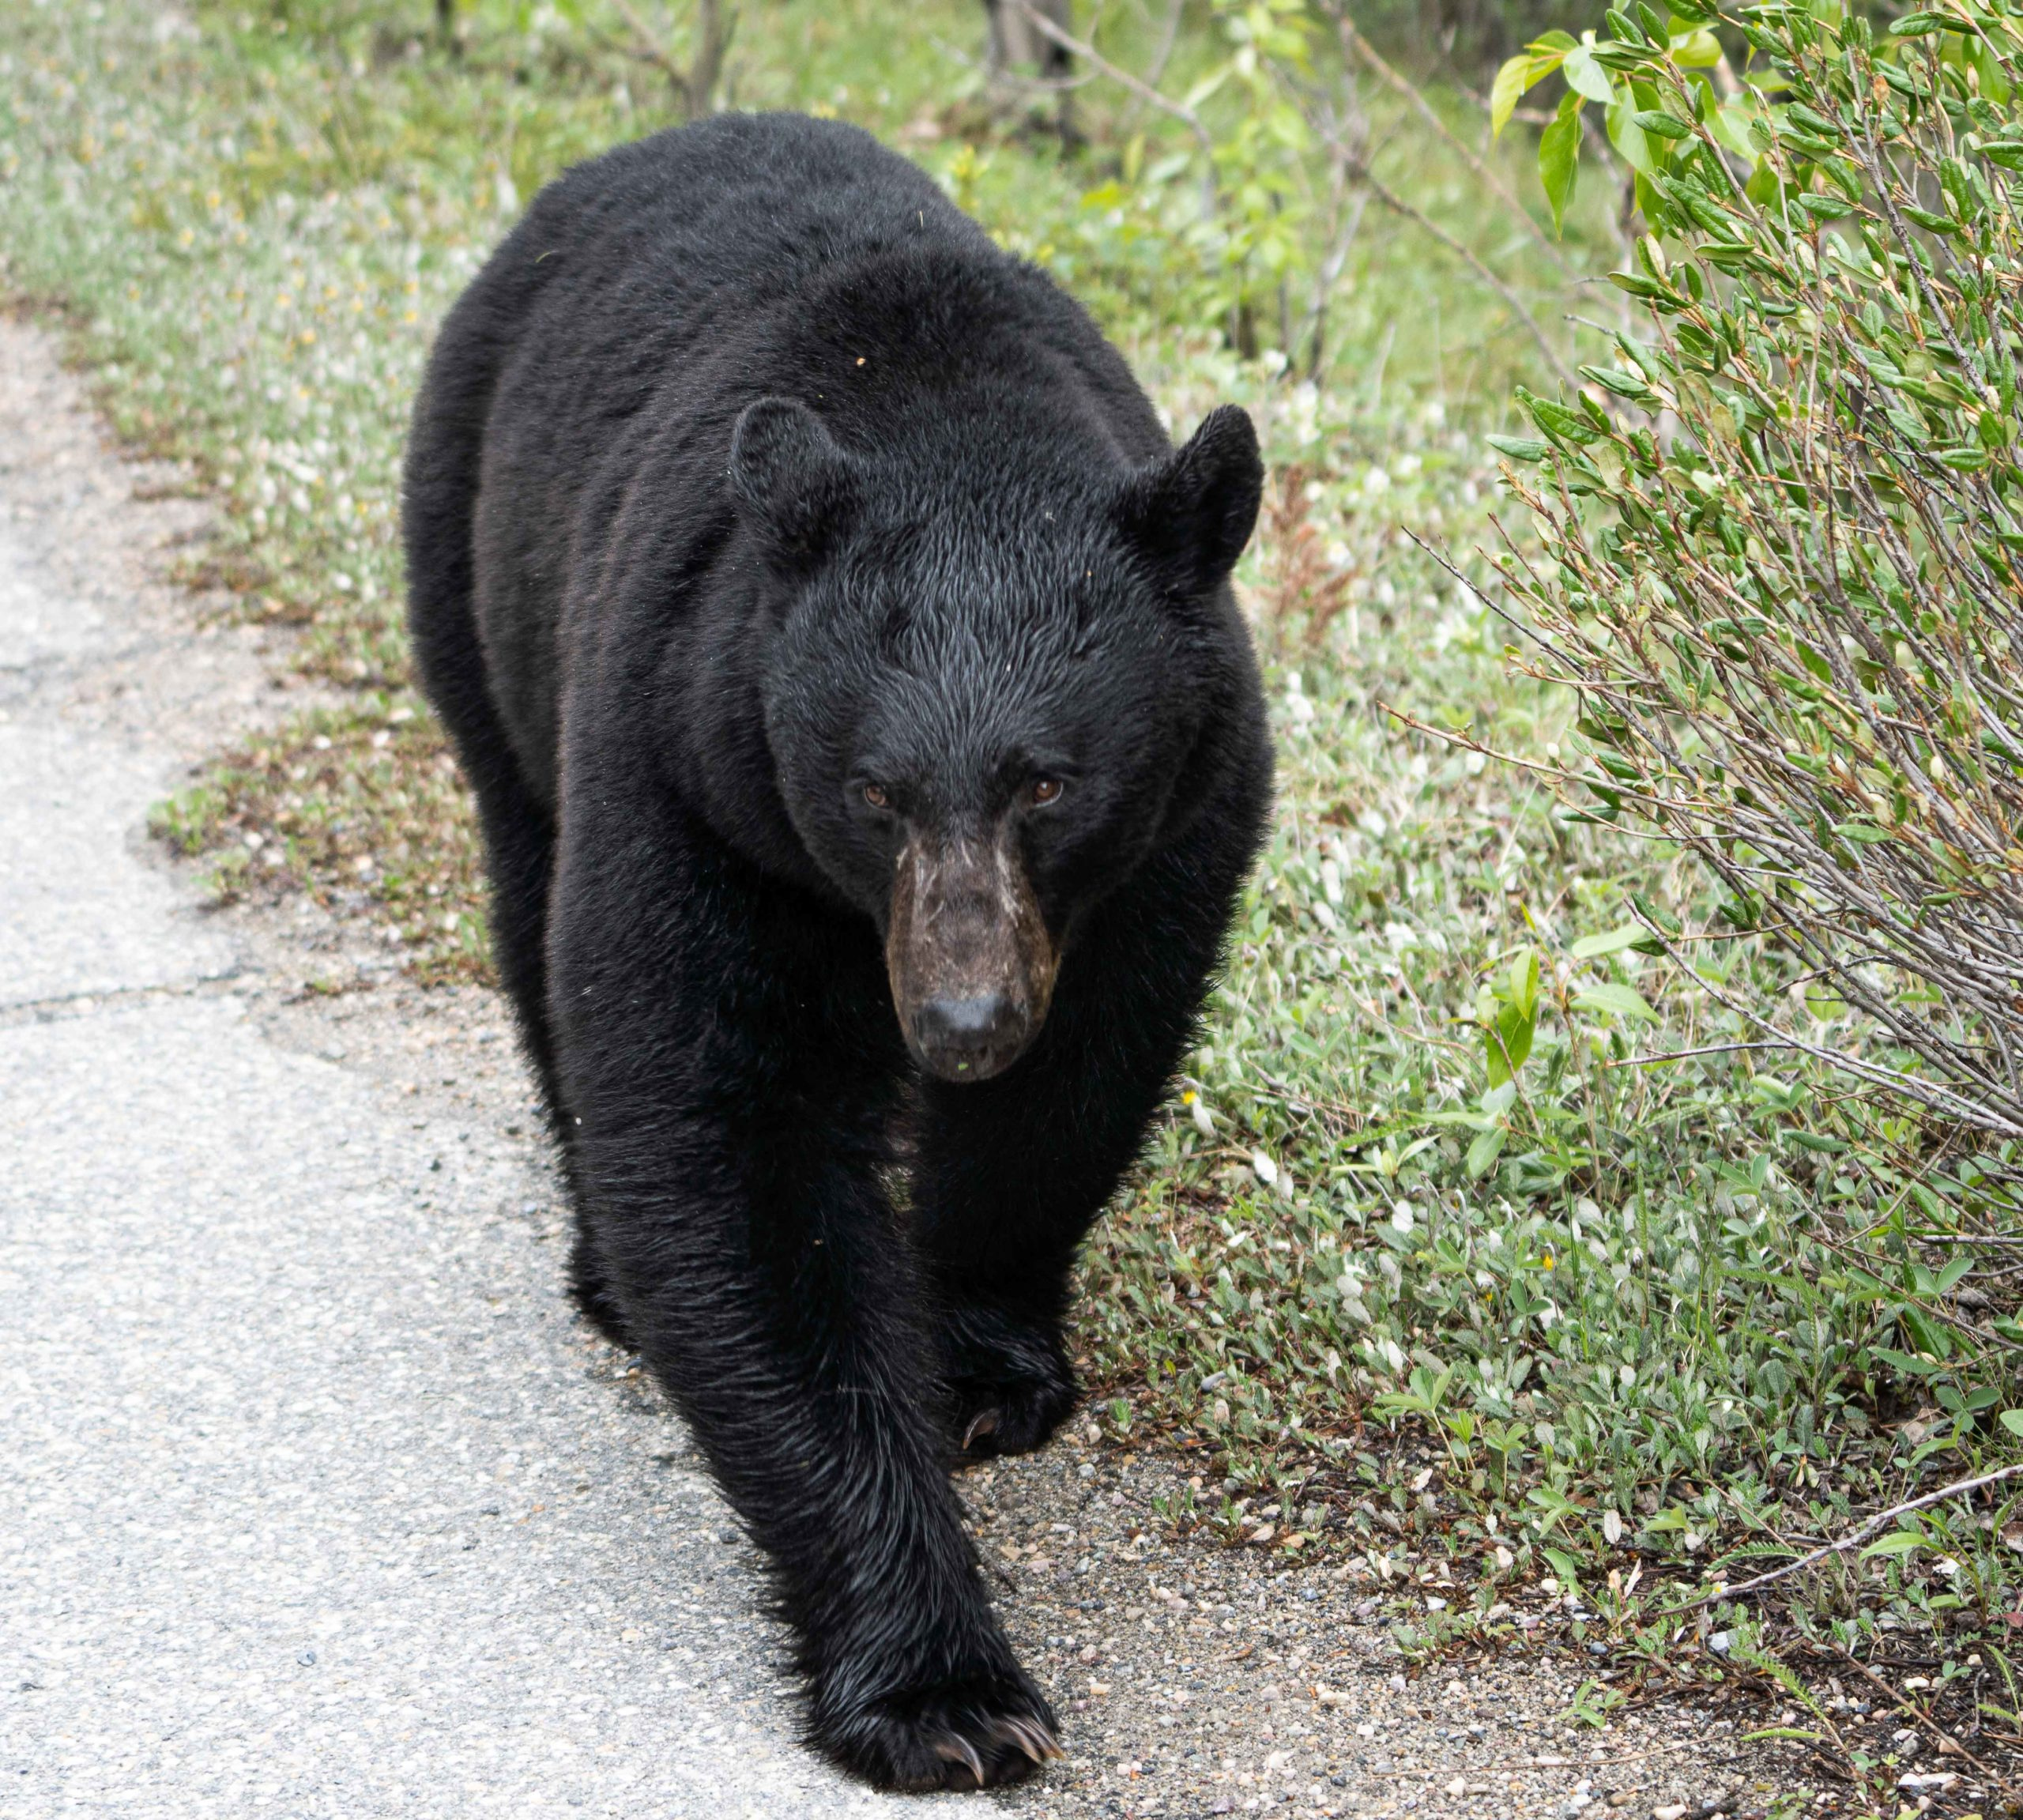 Bear walking by the road by Jack Hawkins